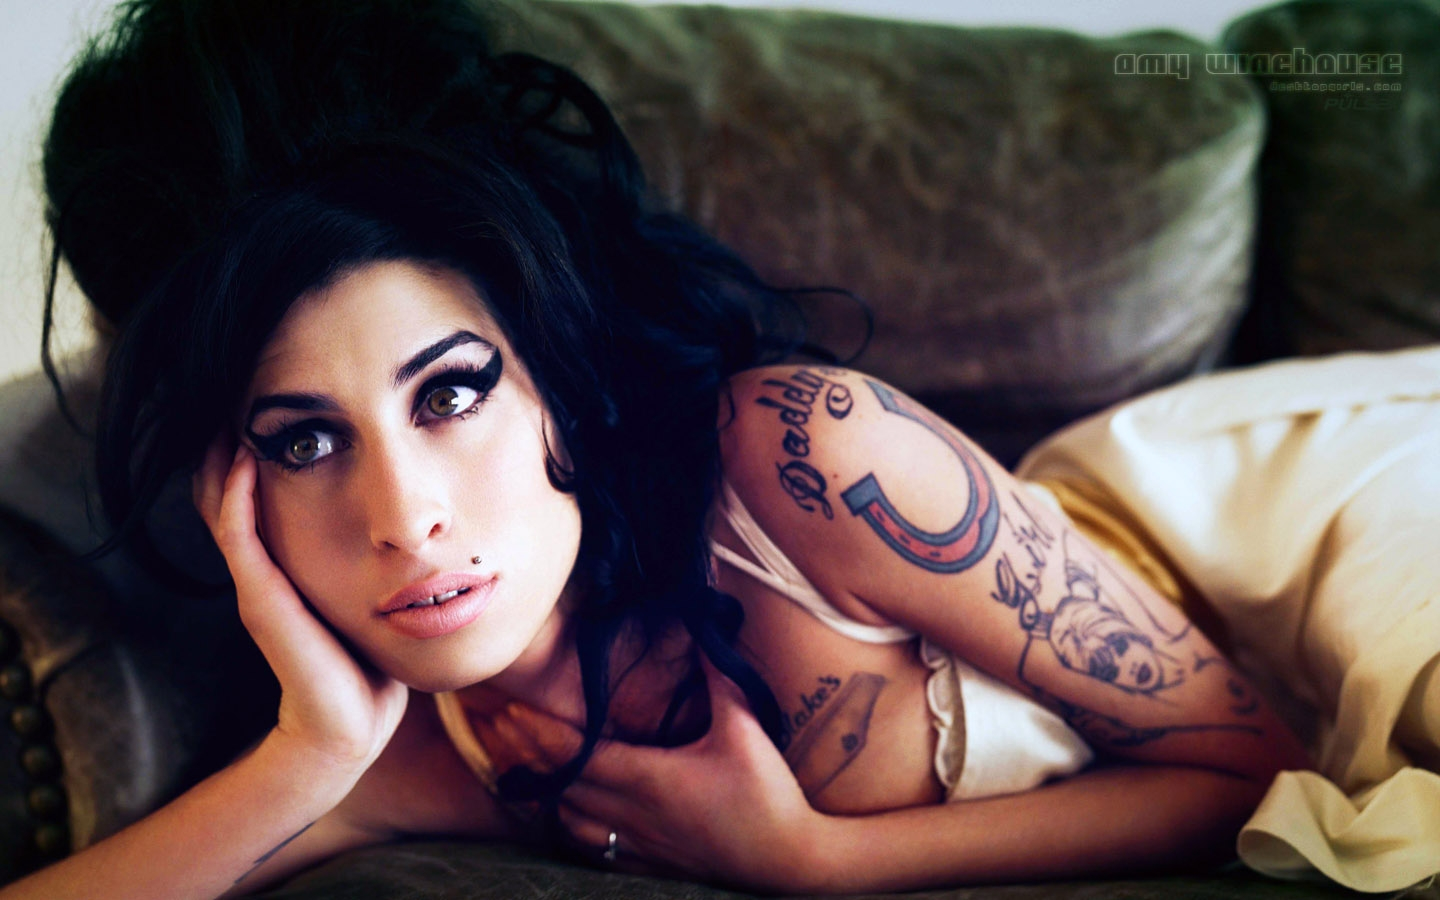 http://4.bp.blogspot.com/-xkNU3NN4E68/TitNTwGB8NI/AAAAAAAAAOM/O6o739z0M88/s1600/amy+winehouse+-+wallpaper+06.jpg